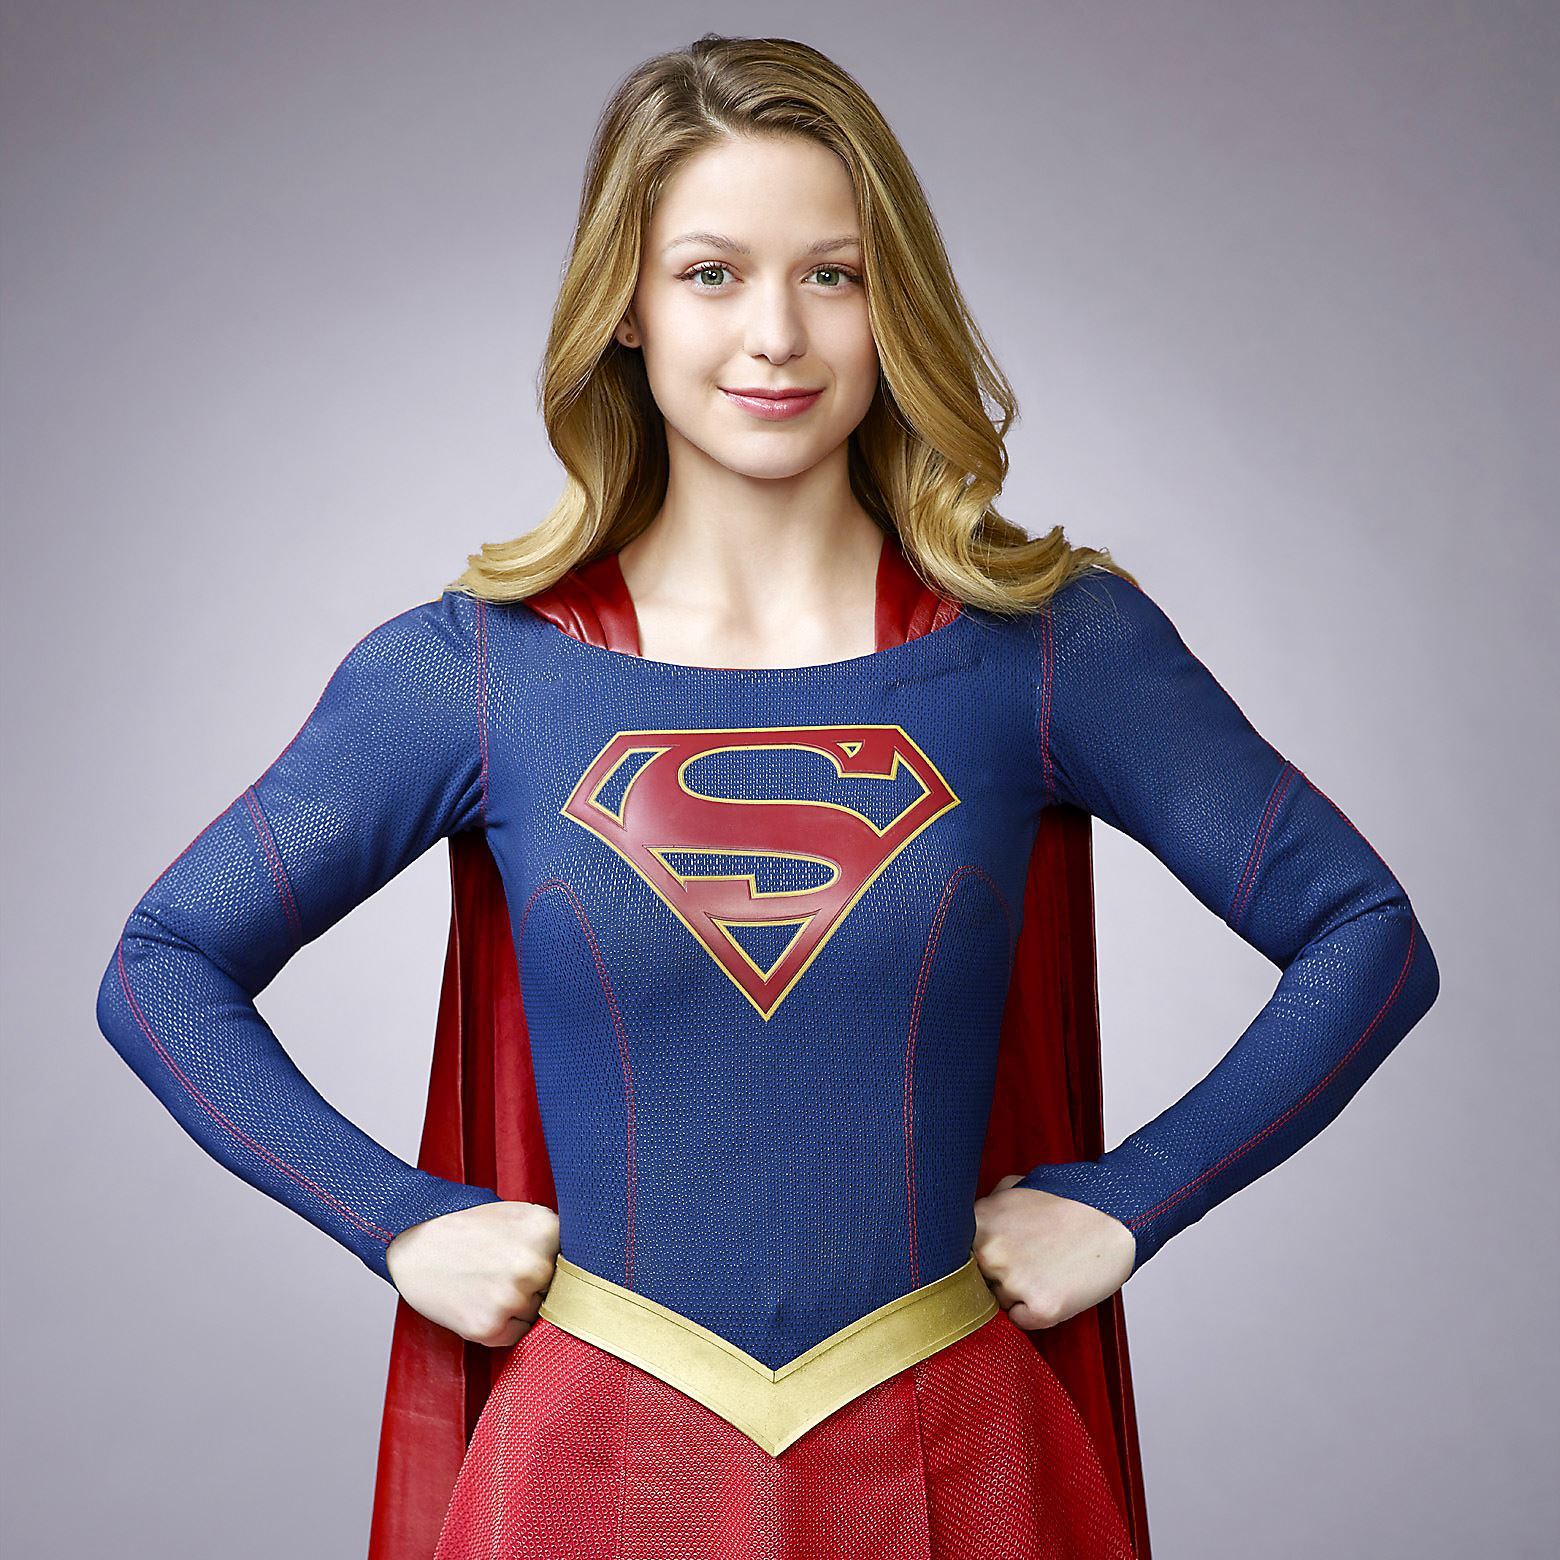 supergirl 5 facts you did not know about the tv series quirkybyte. Black Bedroom Furniture Sets. Home Design Ideas